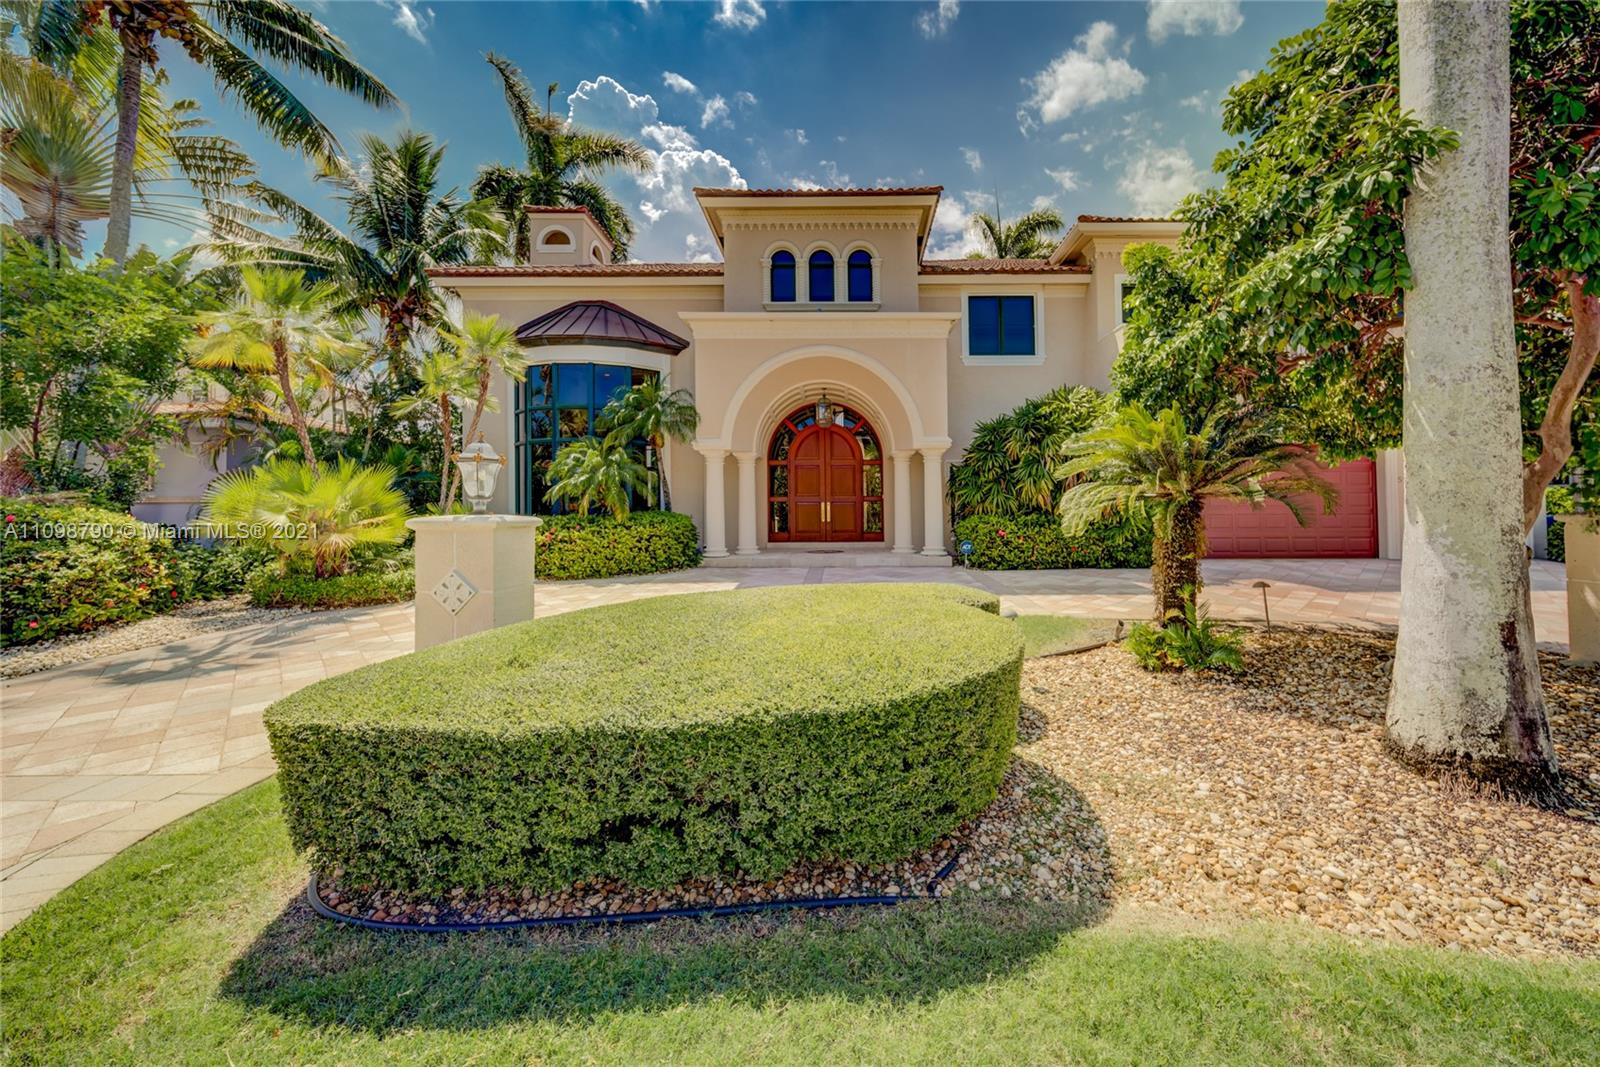 Magnificent estate in prestigious Coral Isles neighborhood in Fort Lauderdale. 100' of deep water frontage with no fixed bridges to the ocean. Immaculately maintained turn-key property. Opulent entrance to 25' ceilings, chef's kitchen, 5 oversized bedrooms including an enormous second-floor master suite with oversized terrace facing the waterway. 5th bedroom is currently converted to a breakfast area and can easily be converted back to a bedroom. A boater's dream home. Bring your most discerning buyers. A must-see. Full 3D video and Virtual videos are available. See links.